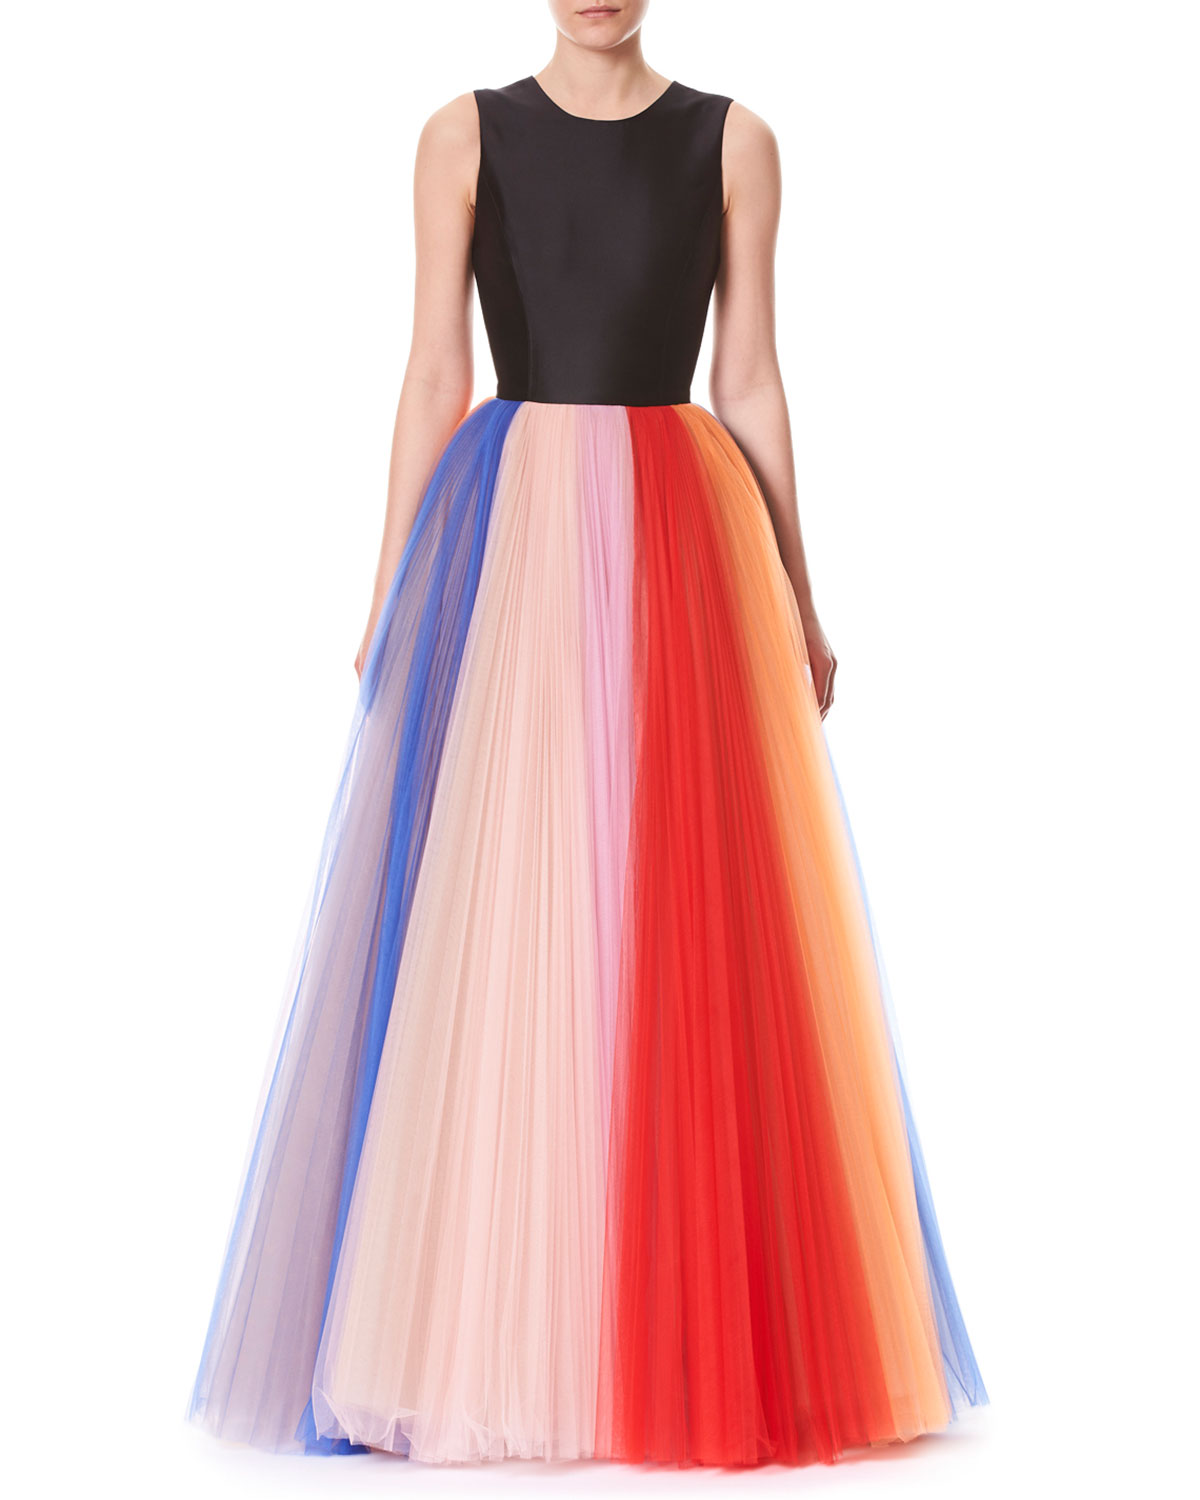 Sleeveless Evening Gown W/ Pleated Tulle Skirt, Black Pattern